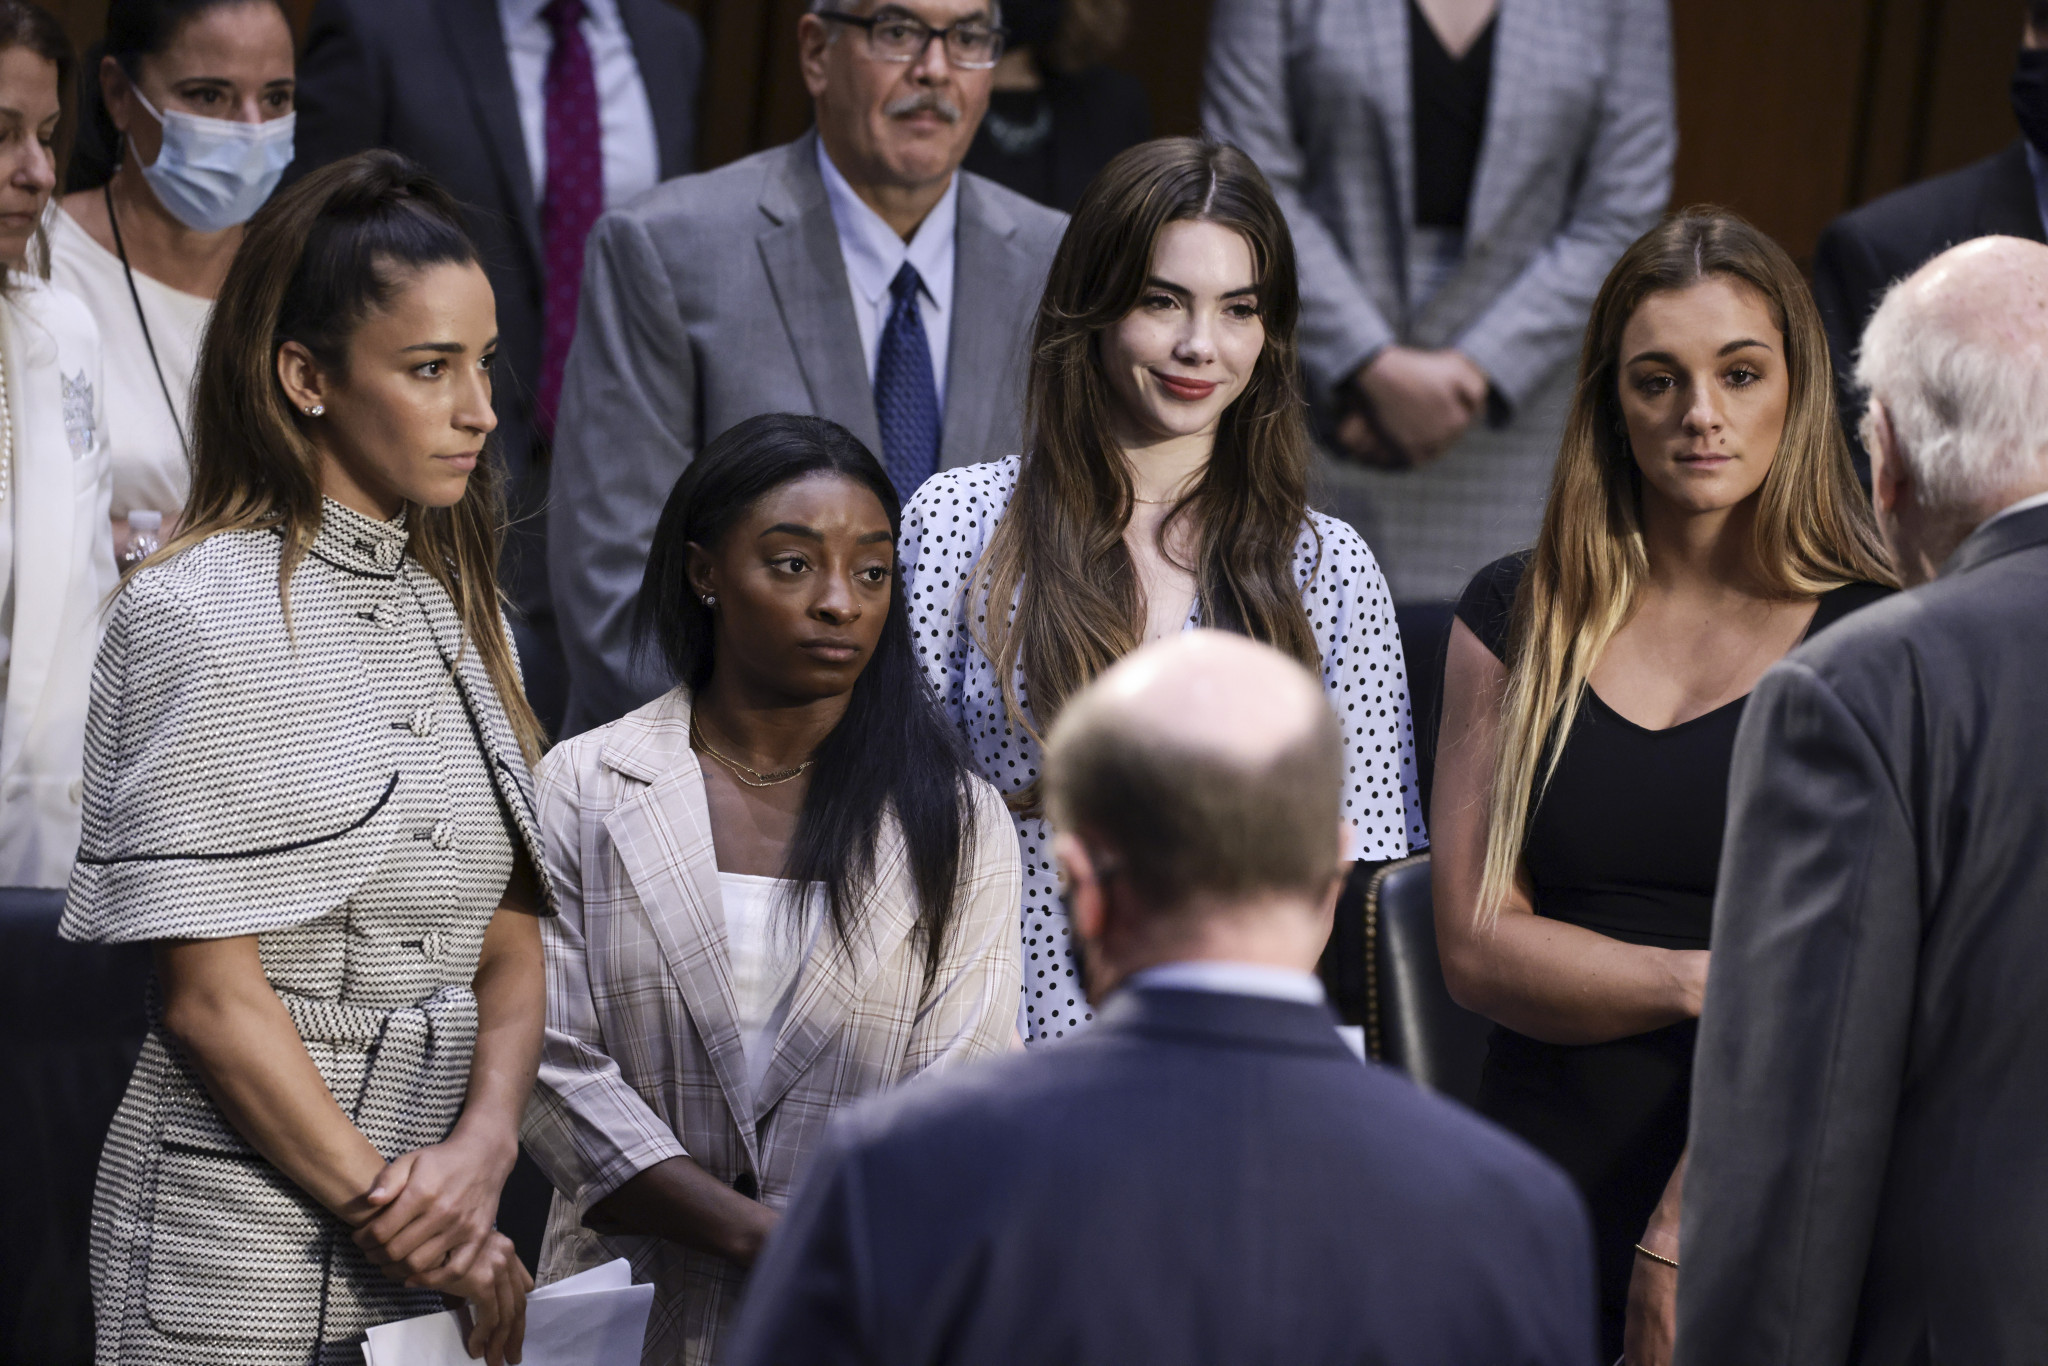 Aly Raisman, Simone Biles, McKayla Maroney and Maggie Nichols - left to right - all gave testimony to the Senate Judiciary Committee ©Getty Images